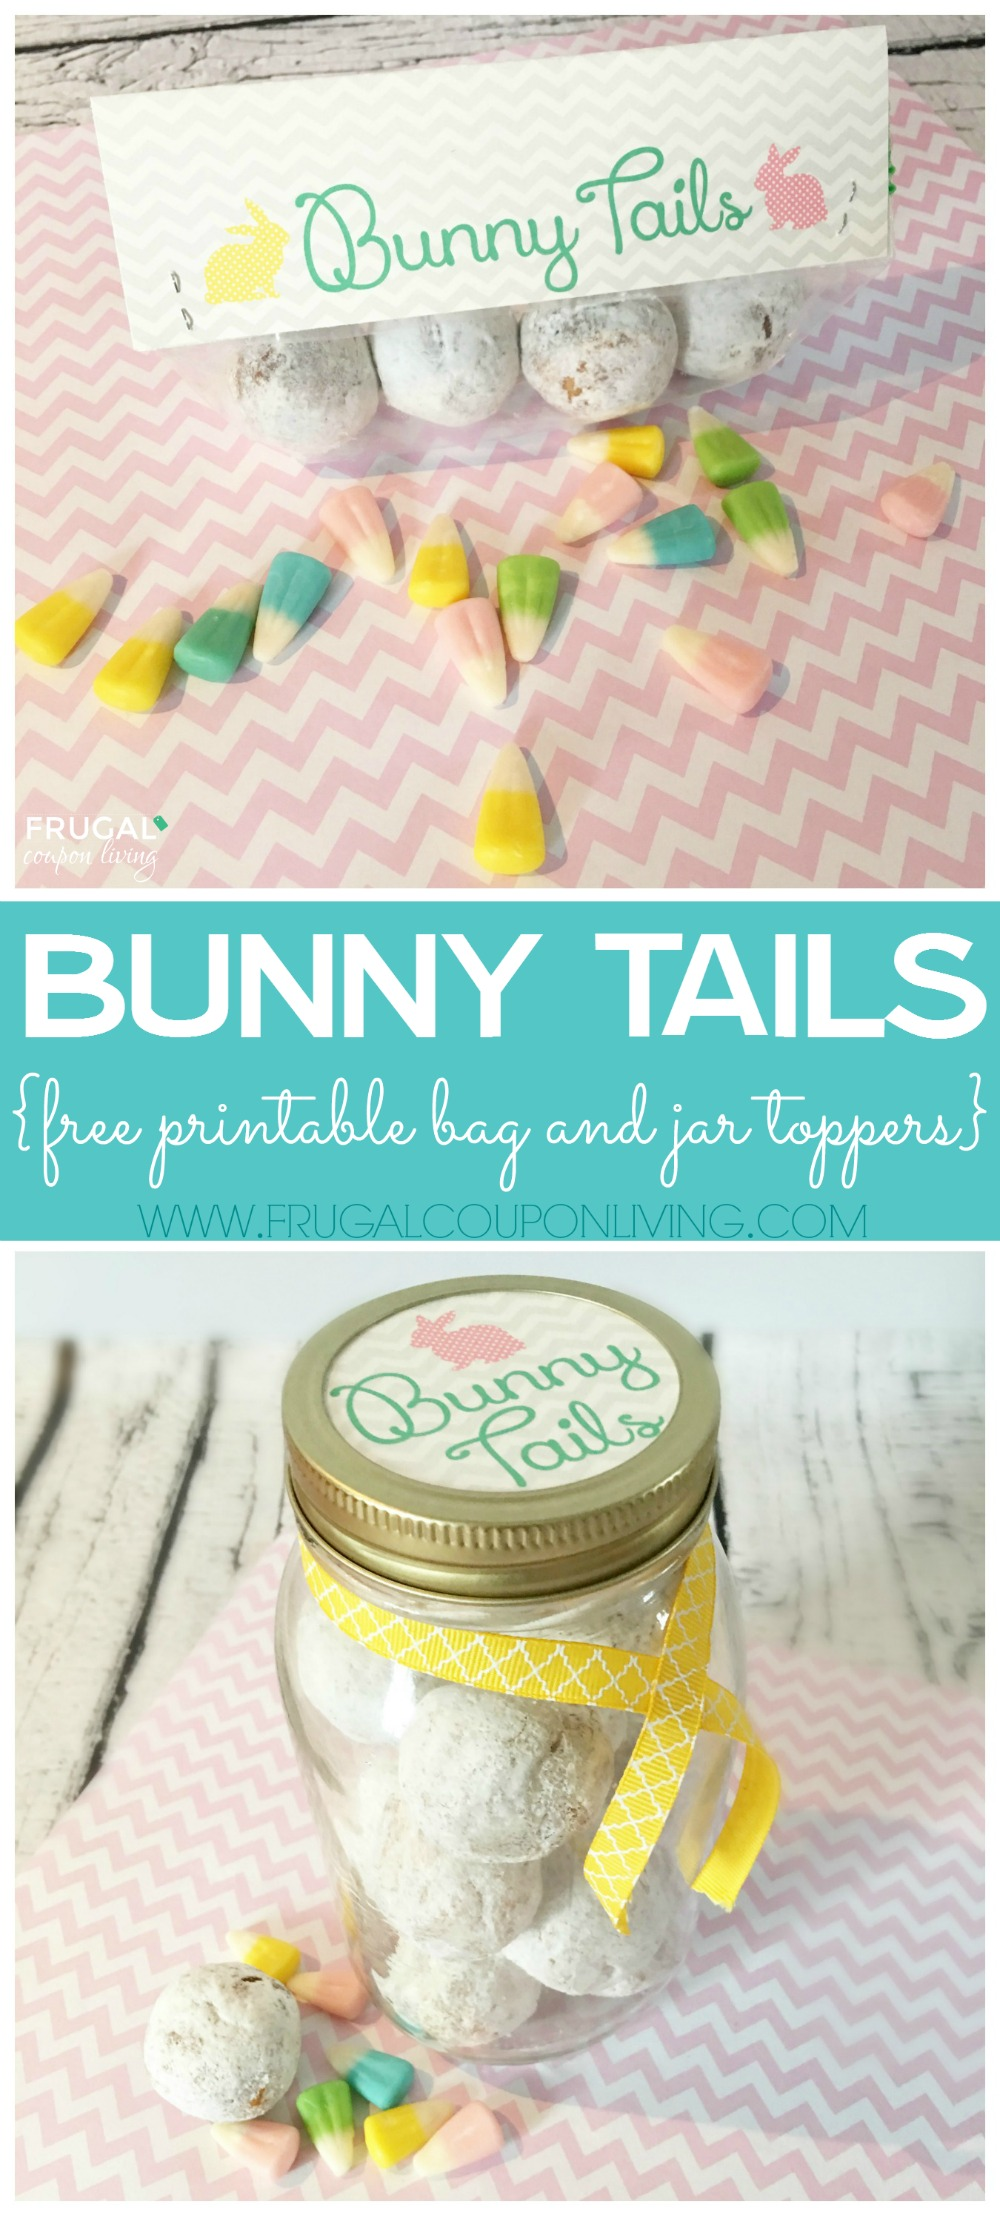 Bunny-Tails-Printable-Jar-Bag-Topper-Frugal-Coupon-Living